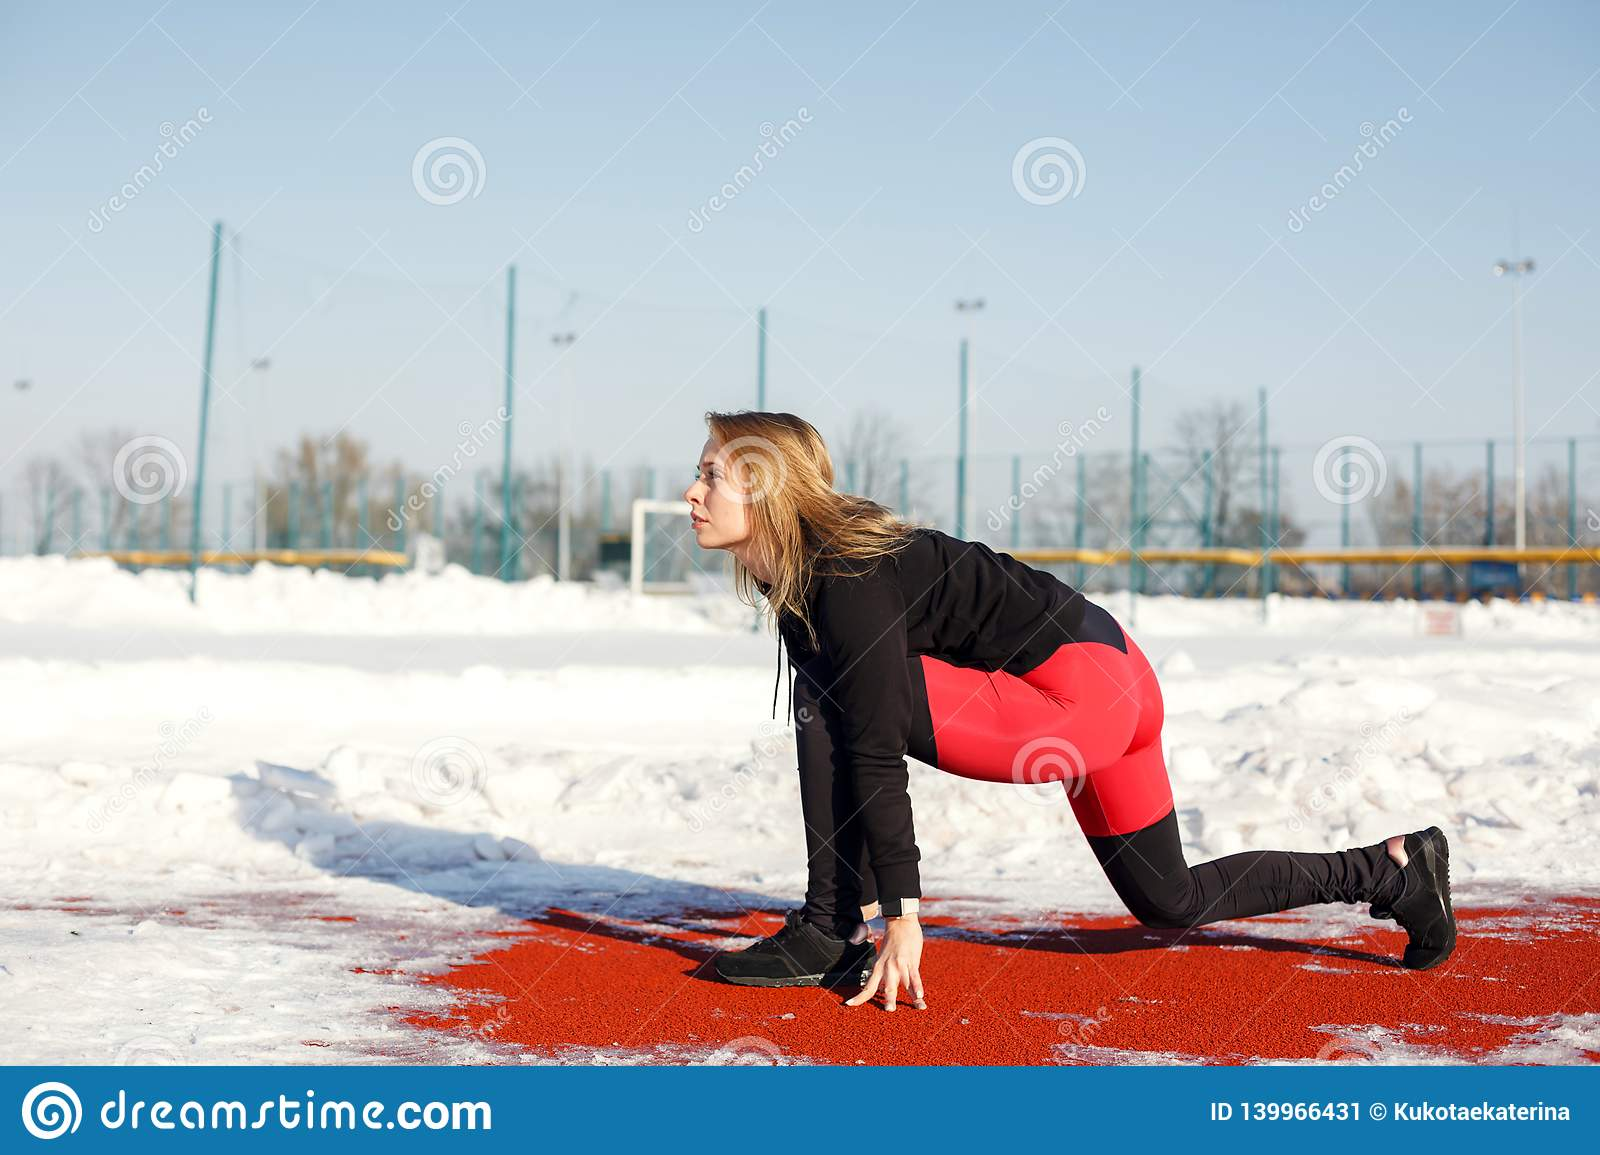 Young caucasian female blonde in red leggings stretching exercise on a red running track in a snowy stadium. fit and sports